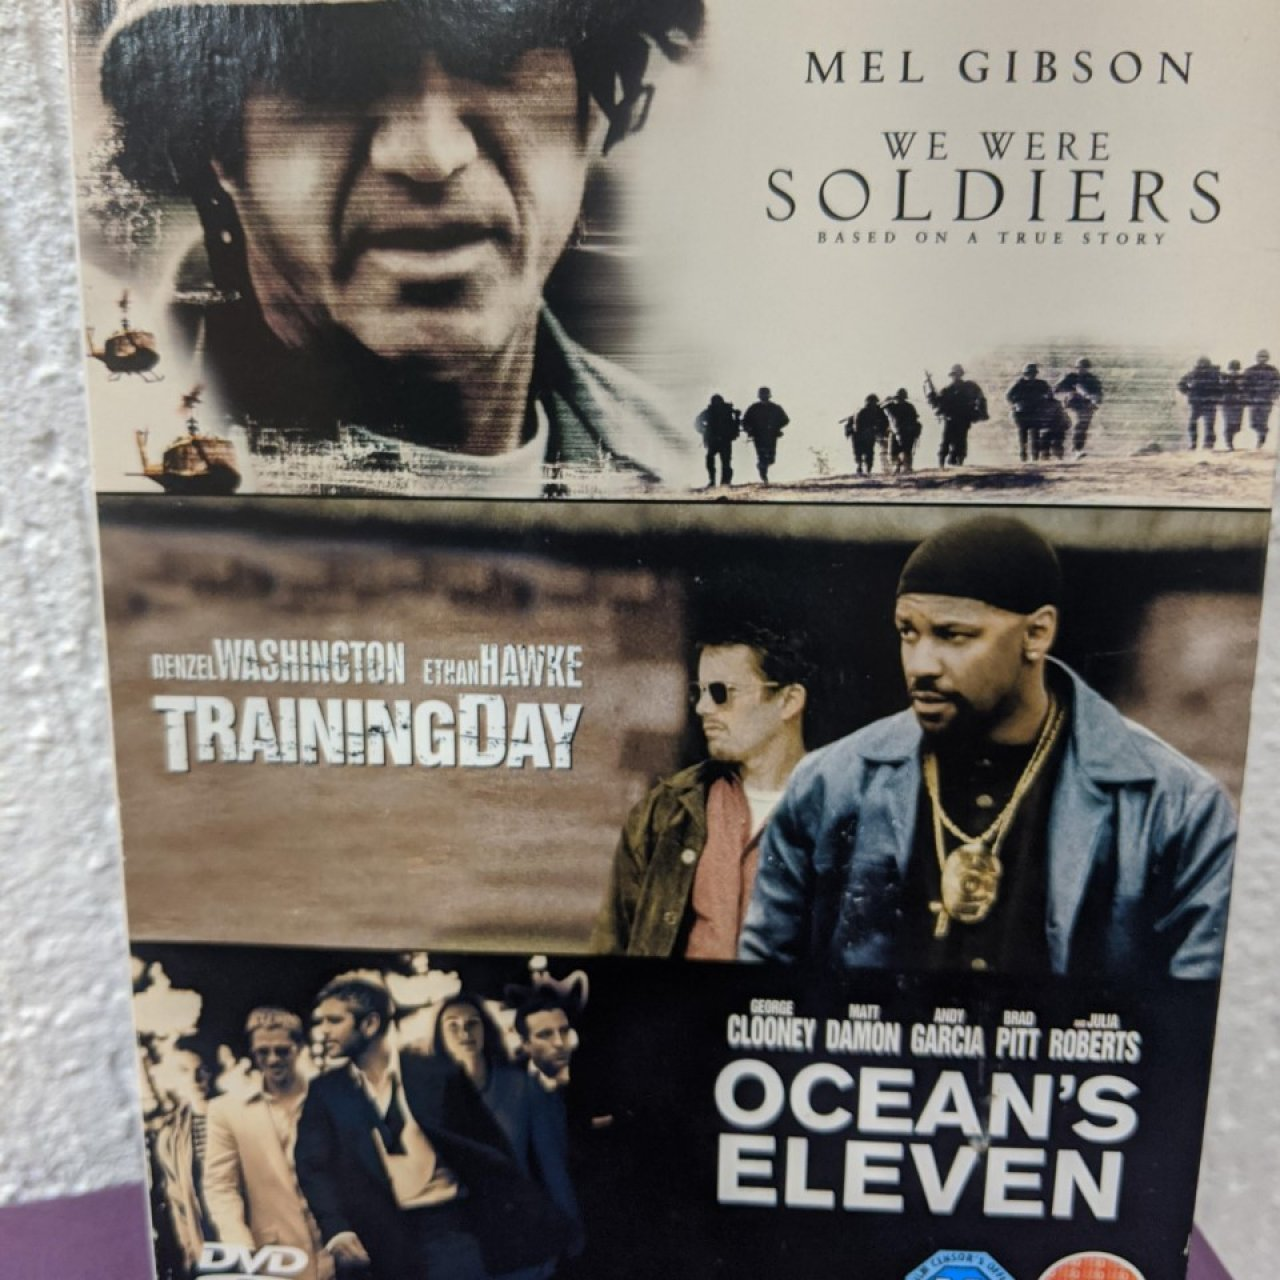 We were soldiers, Training Day and Oceans Eleven -3 dvds